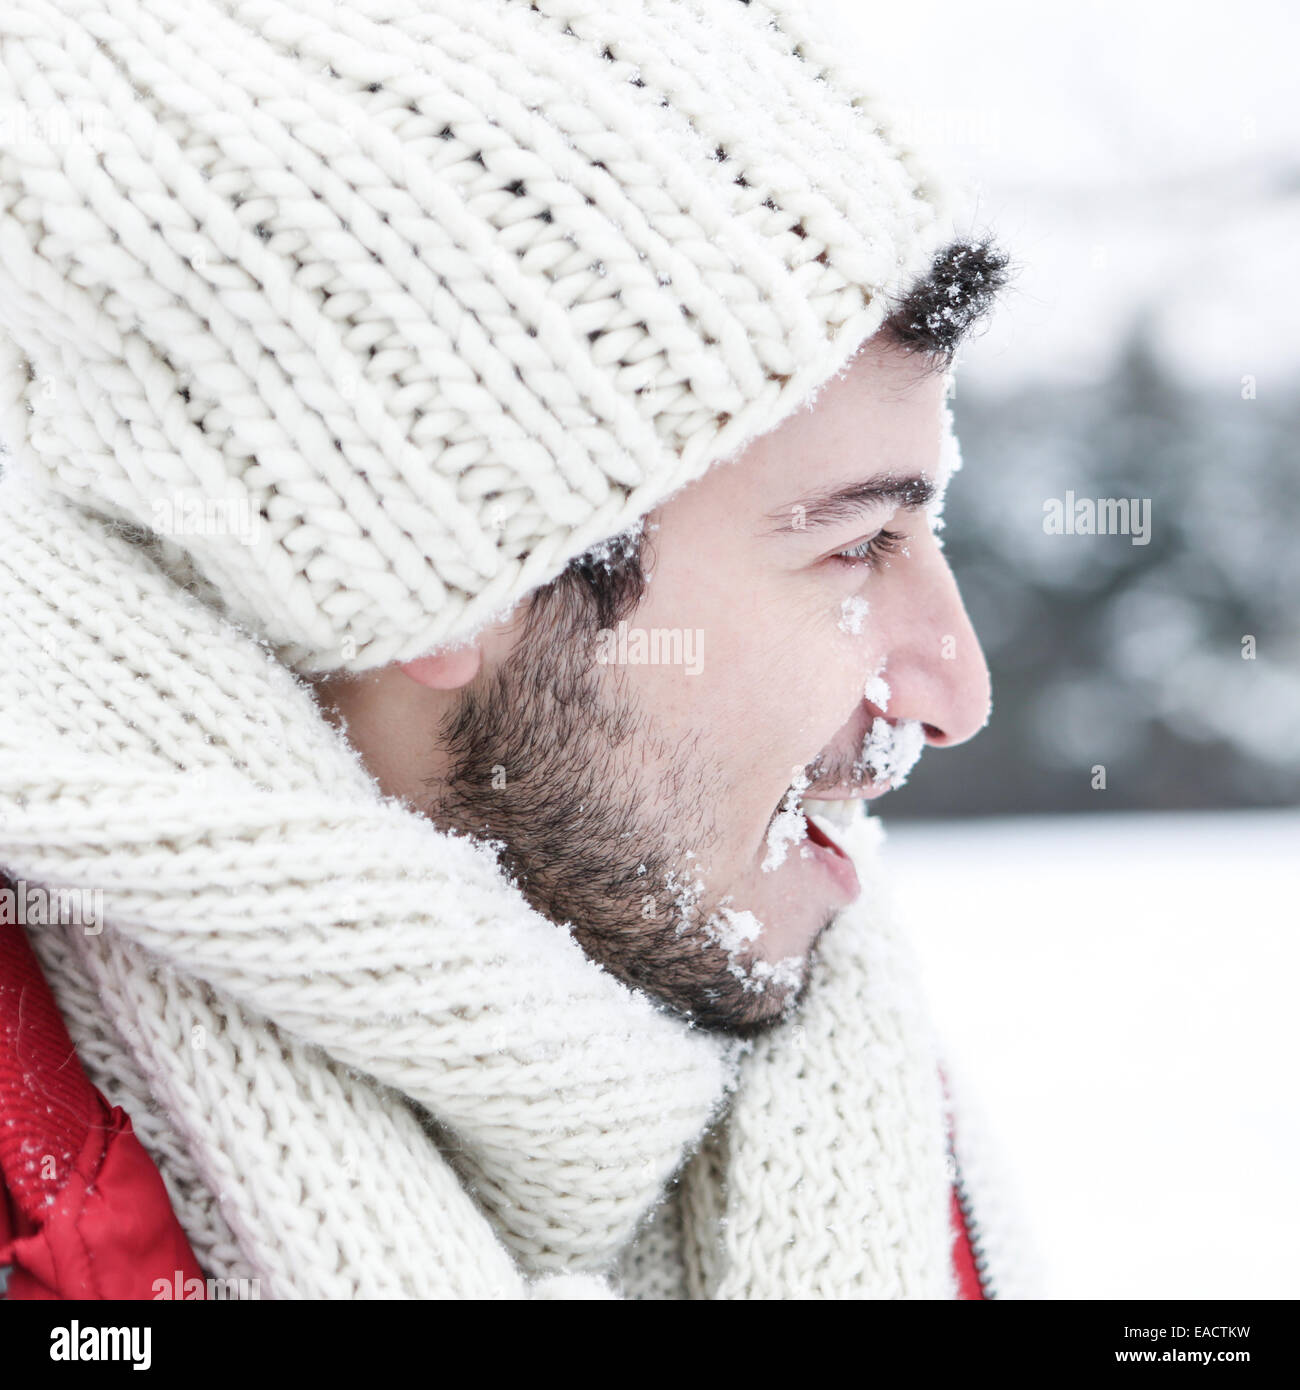 Man in winter with snow in his face at a snowball fight - Stock Image